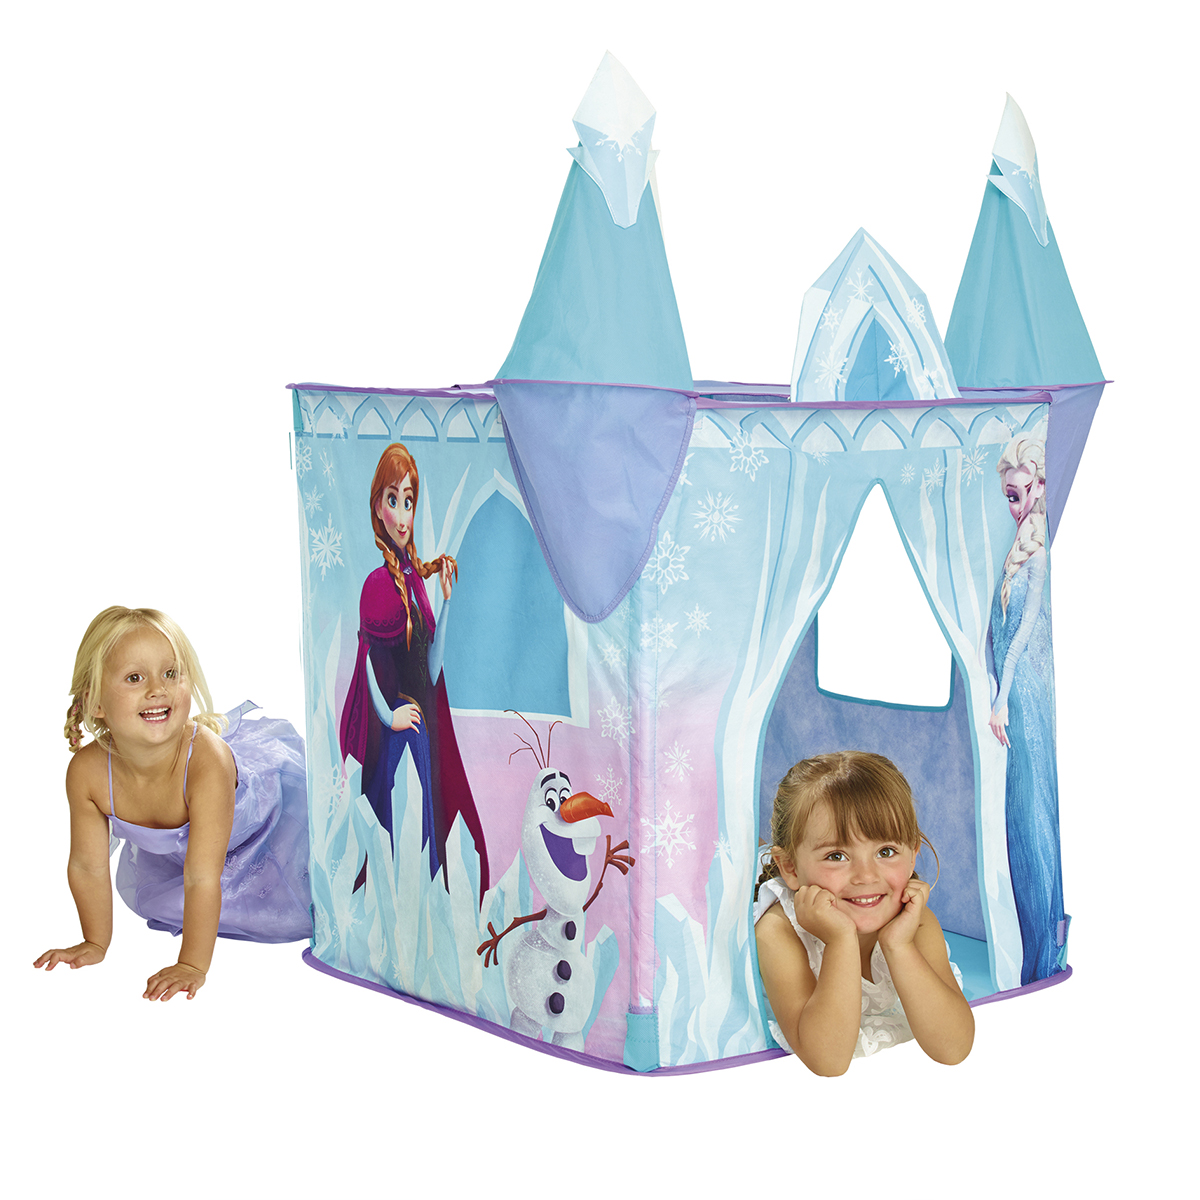 tente de jeux ch teau la reine des neiges disney ebay. Black Bedroom Furniture Sets. Home Design Ideas